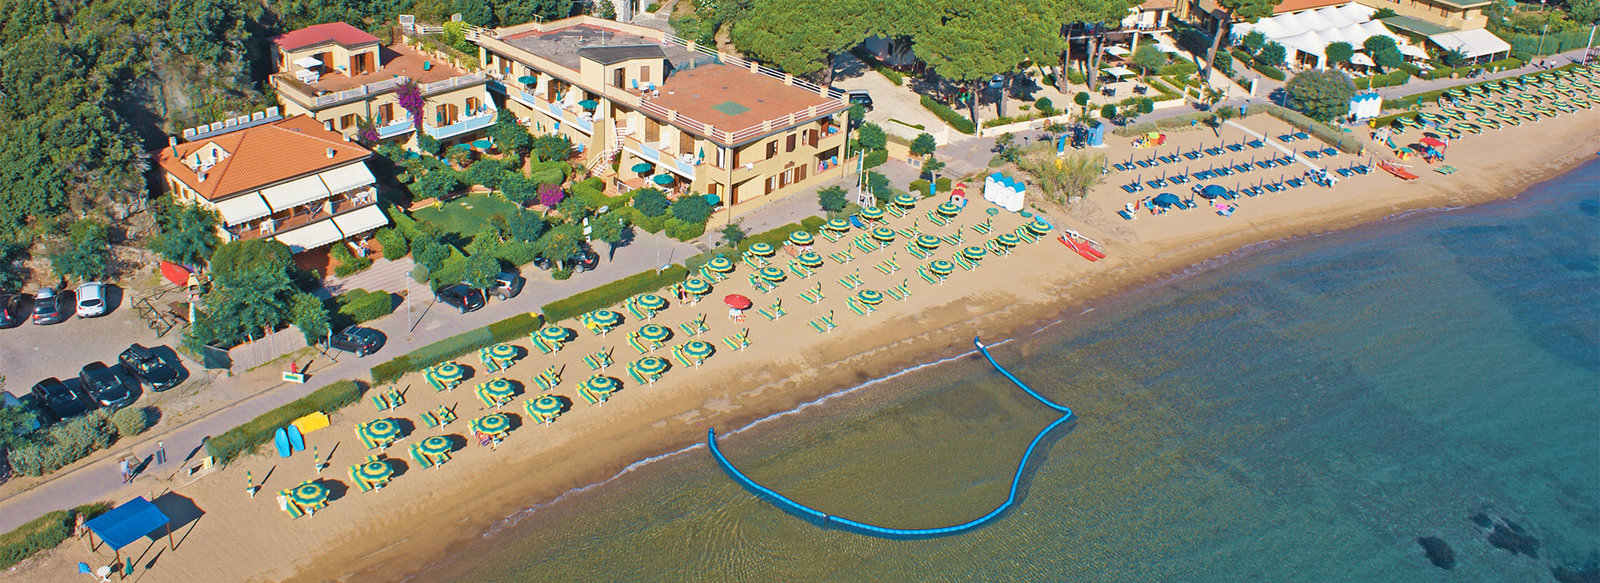 Residence fronte mare per famiglie